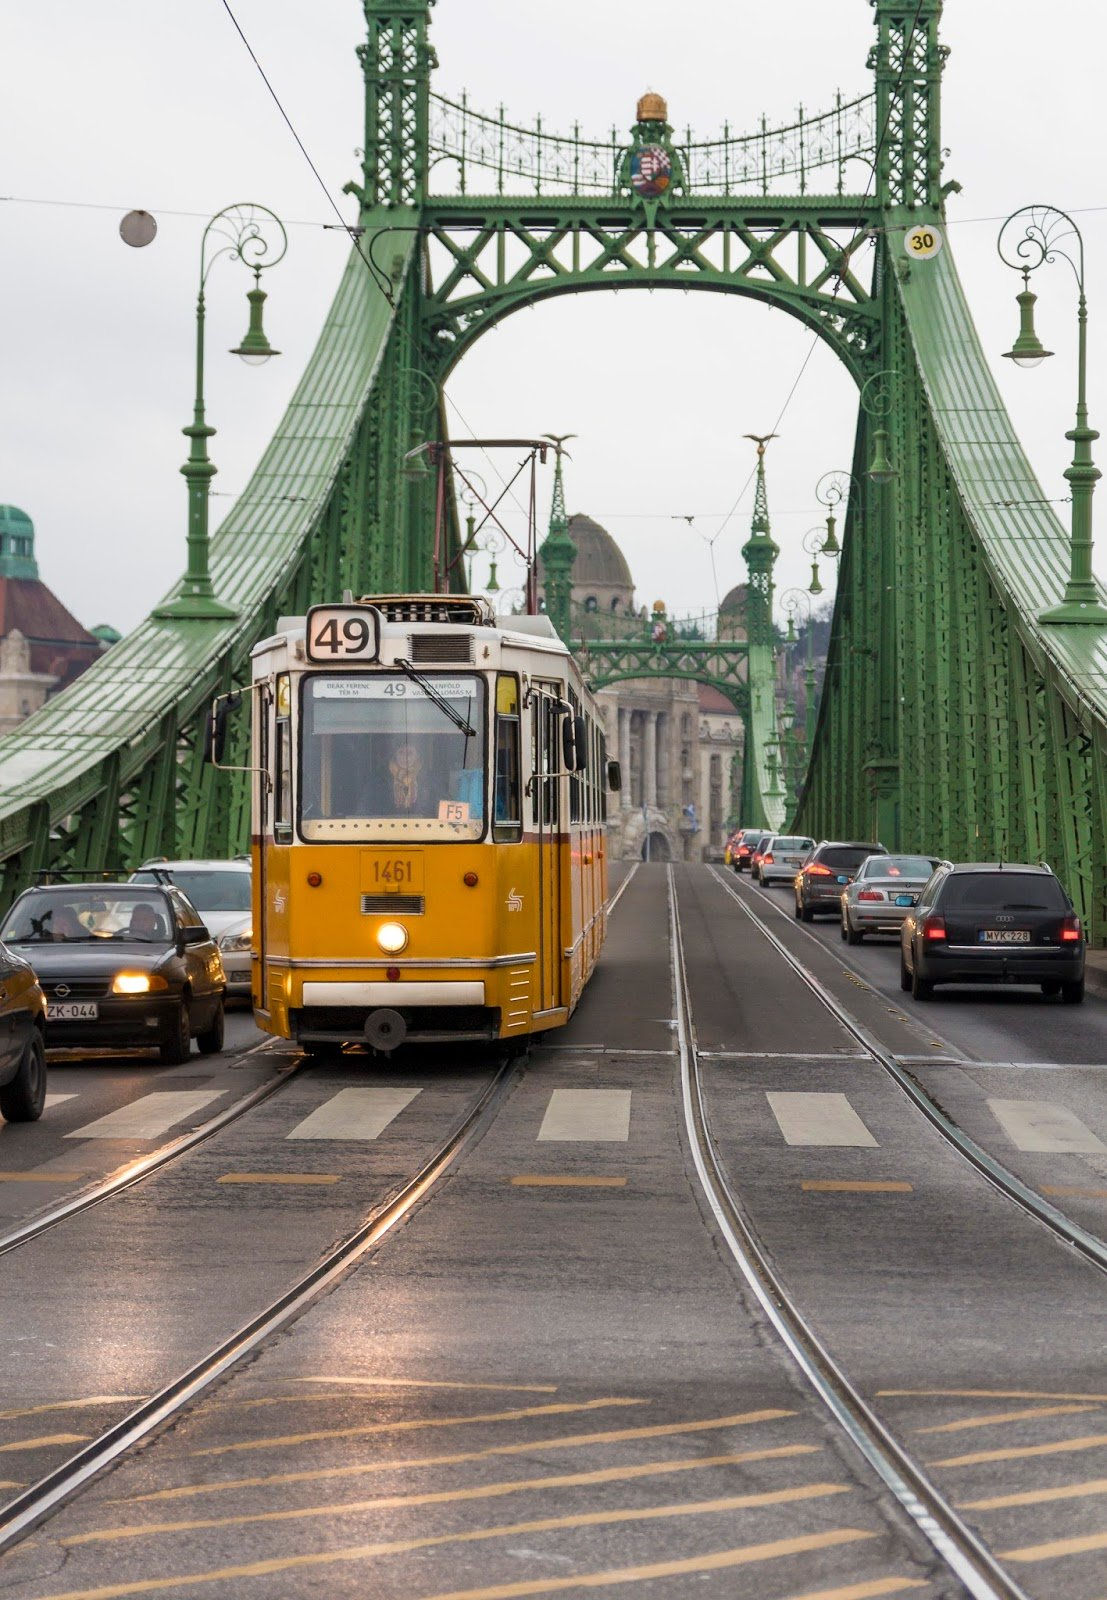 Budapest tramway visite week-end